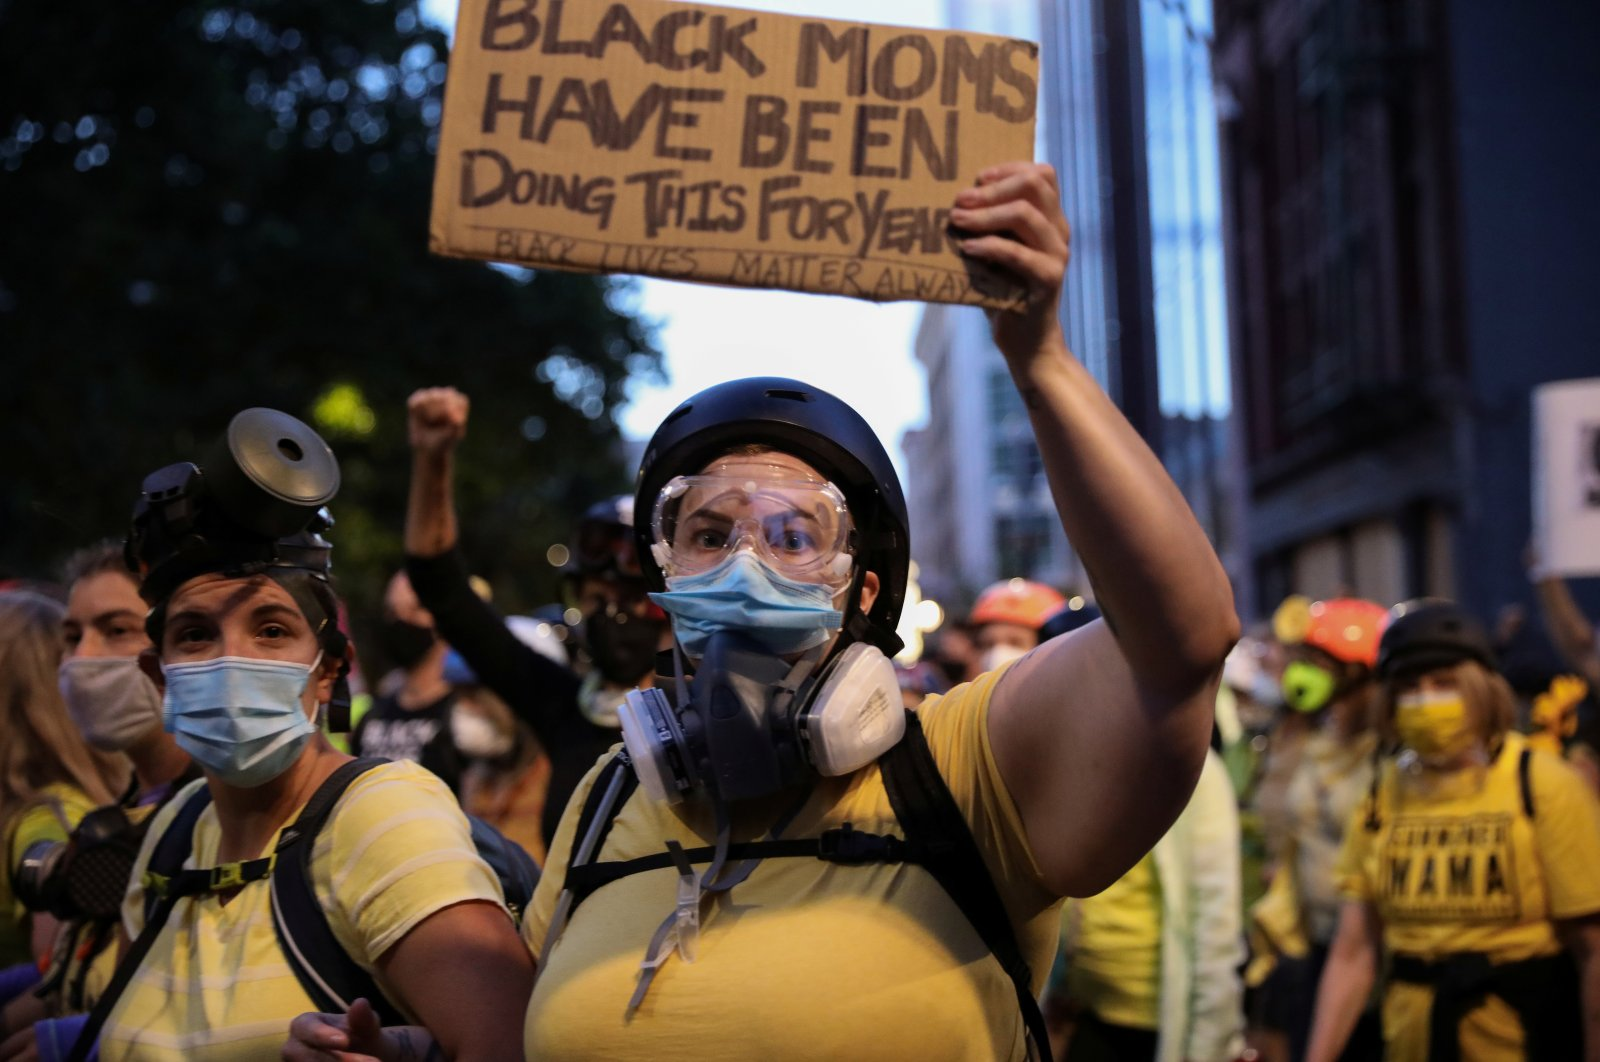 Mothers protest against racial inequality and police violence in Portland, Oregon, U.S., July 23, 2020. (Reuters Photo)